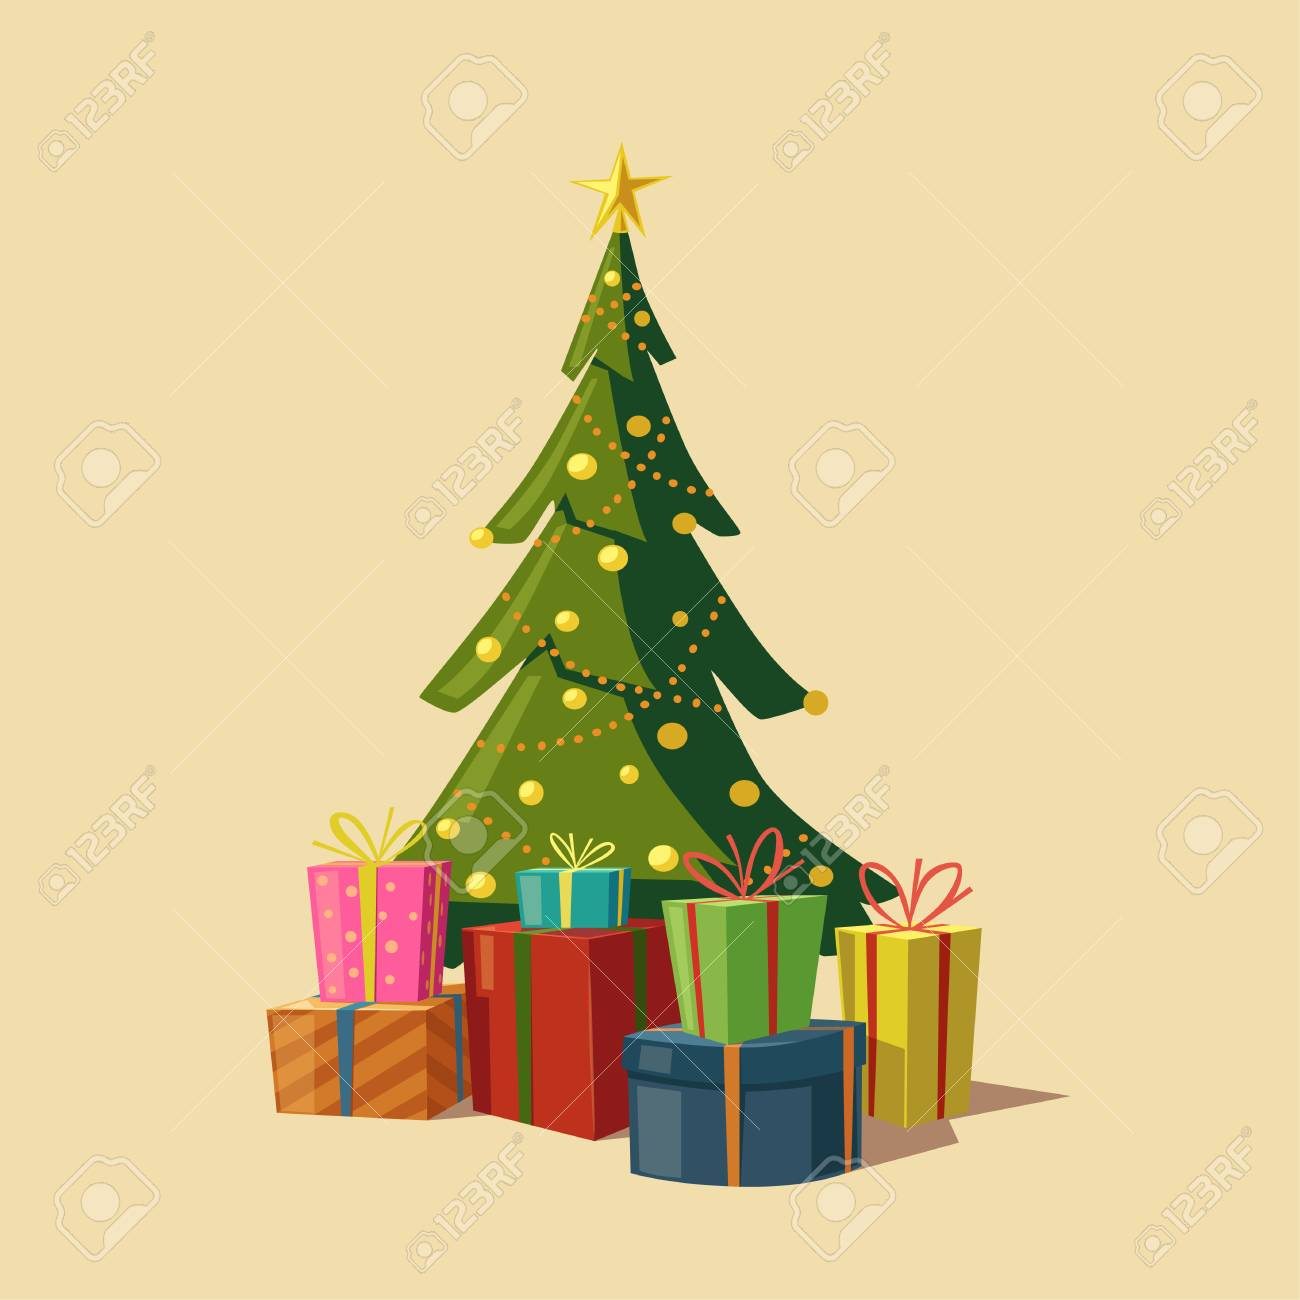 Christmas Tree With Gifts Cartoon Vector Illustration Star